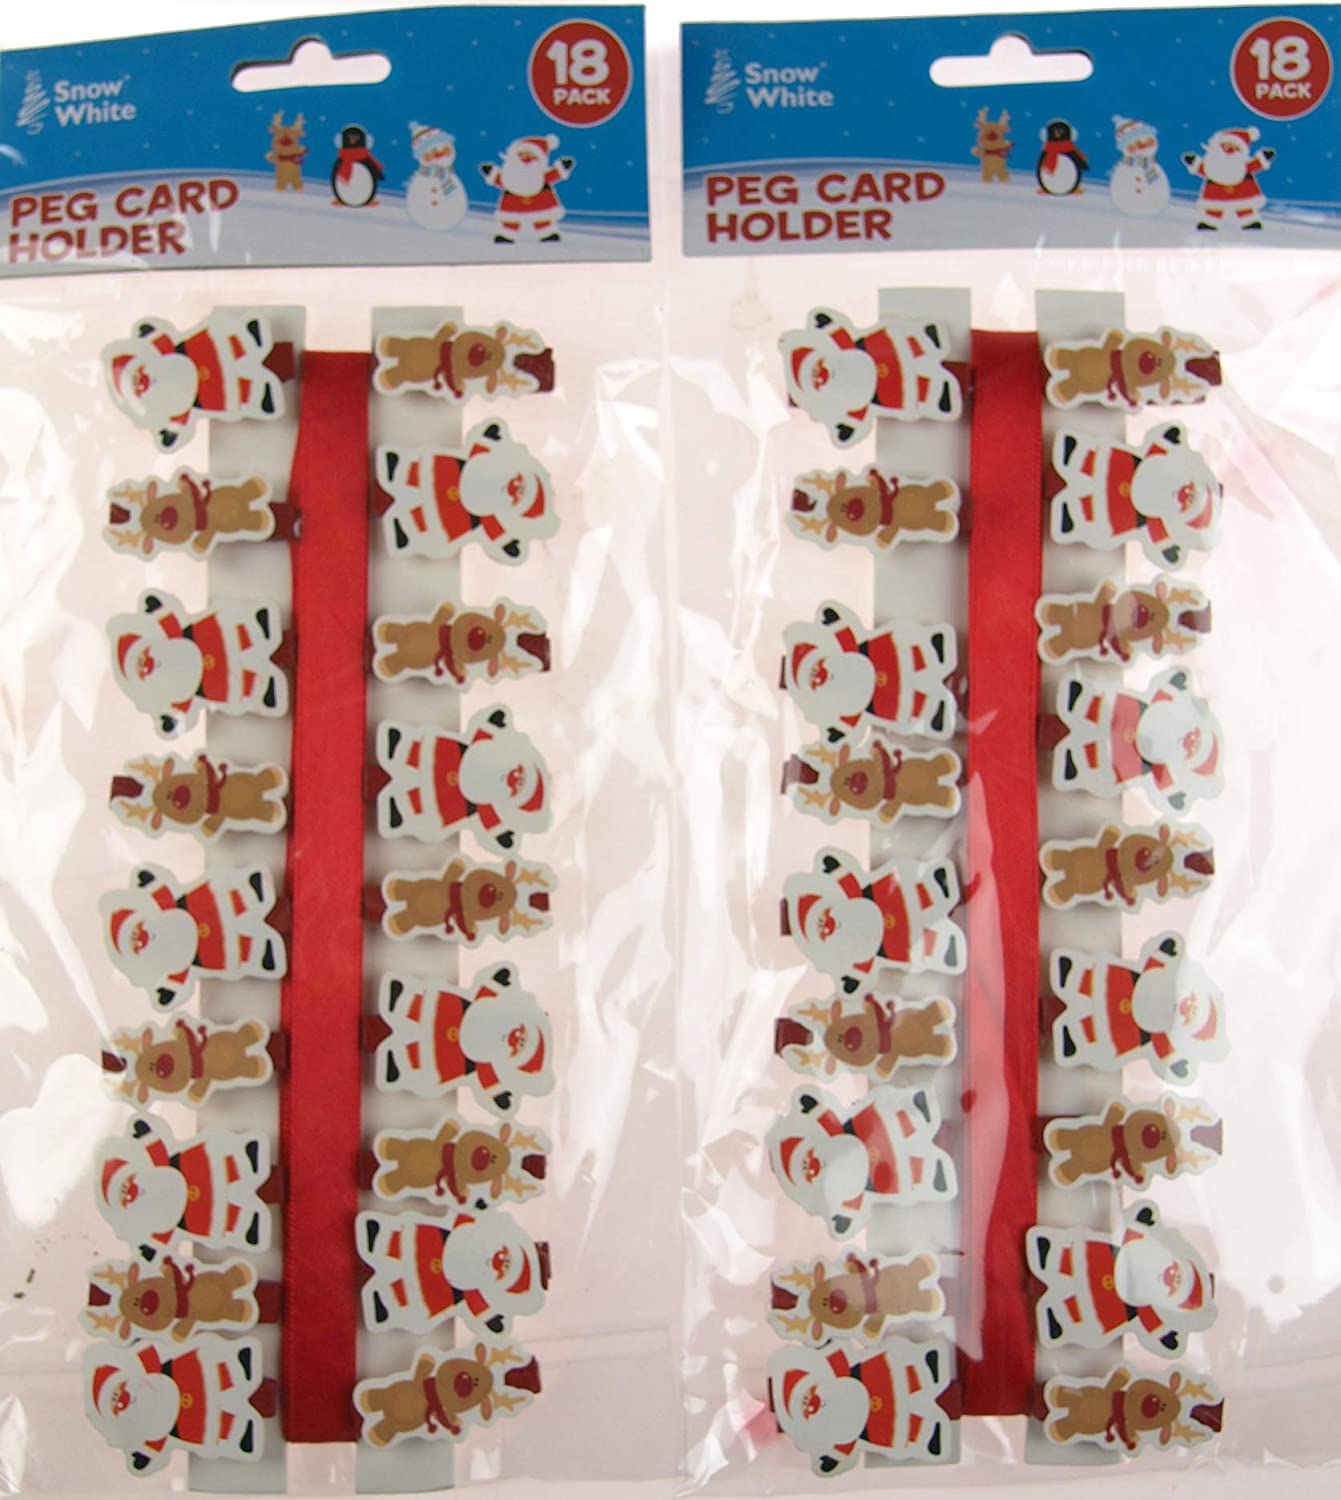 BWG Set Of 2 Christmas Cars Holders - Pegs And Ribbon Holds 36 Cards - Reindeer Santa